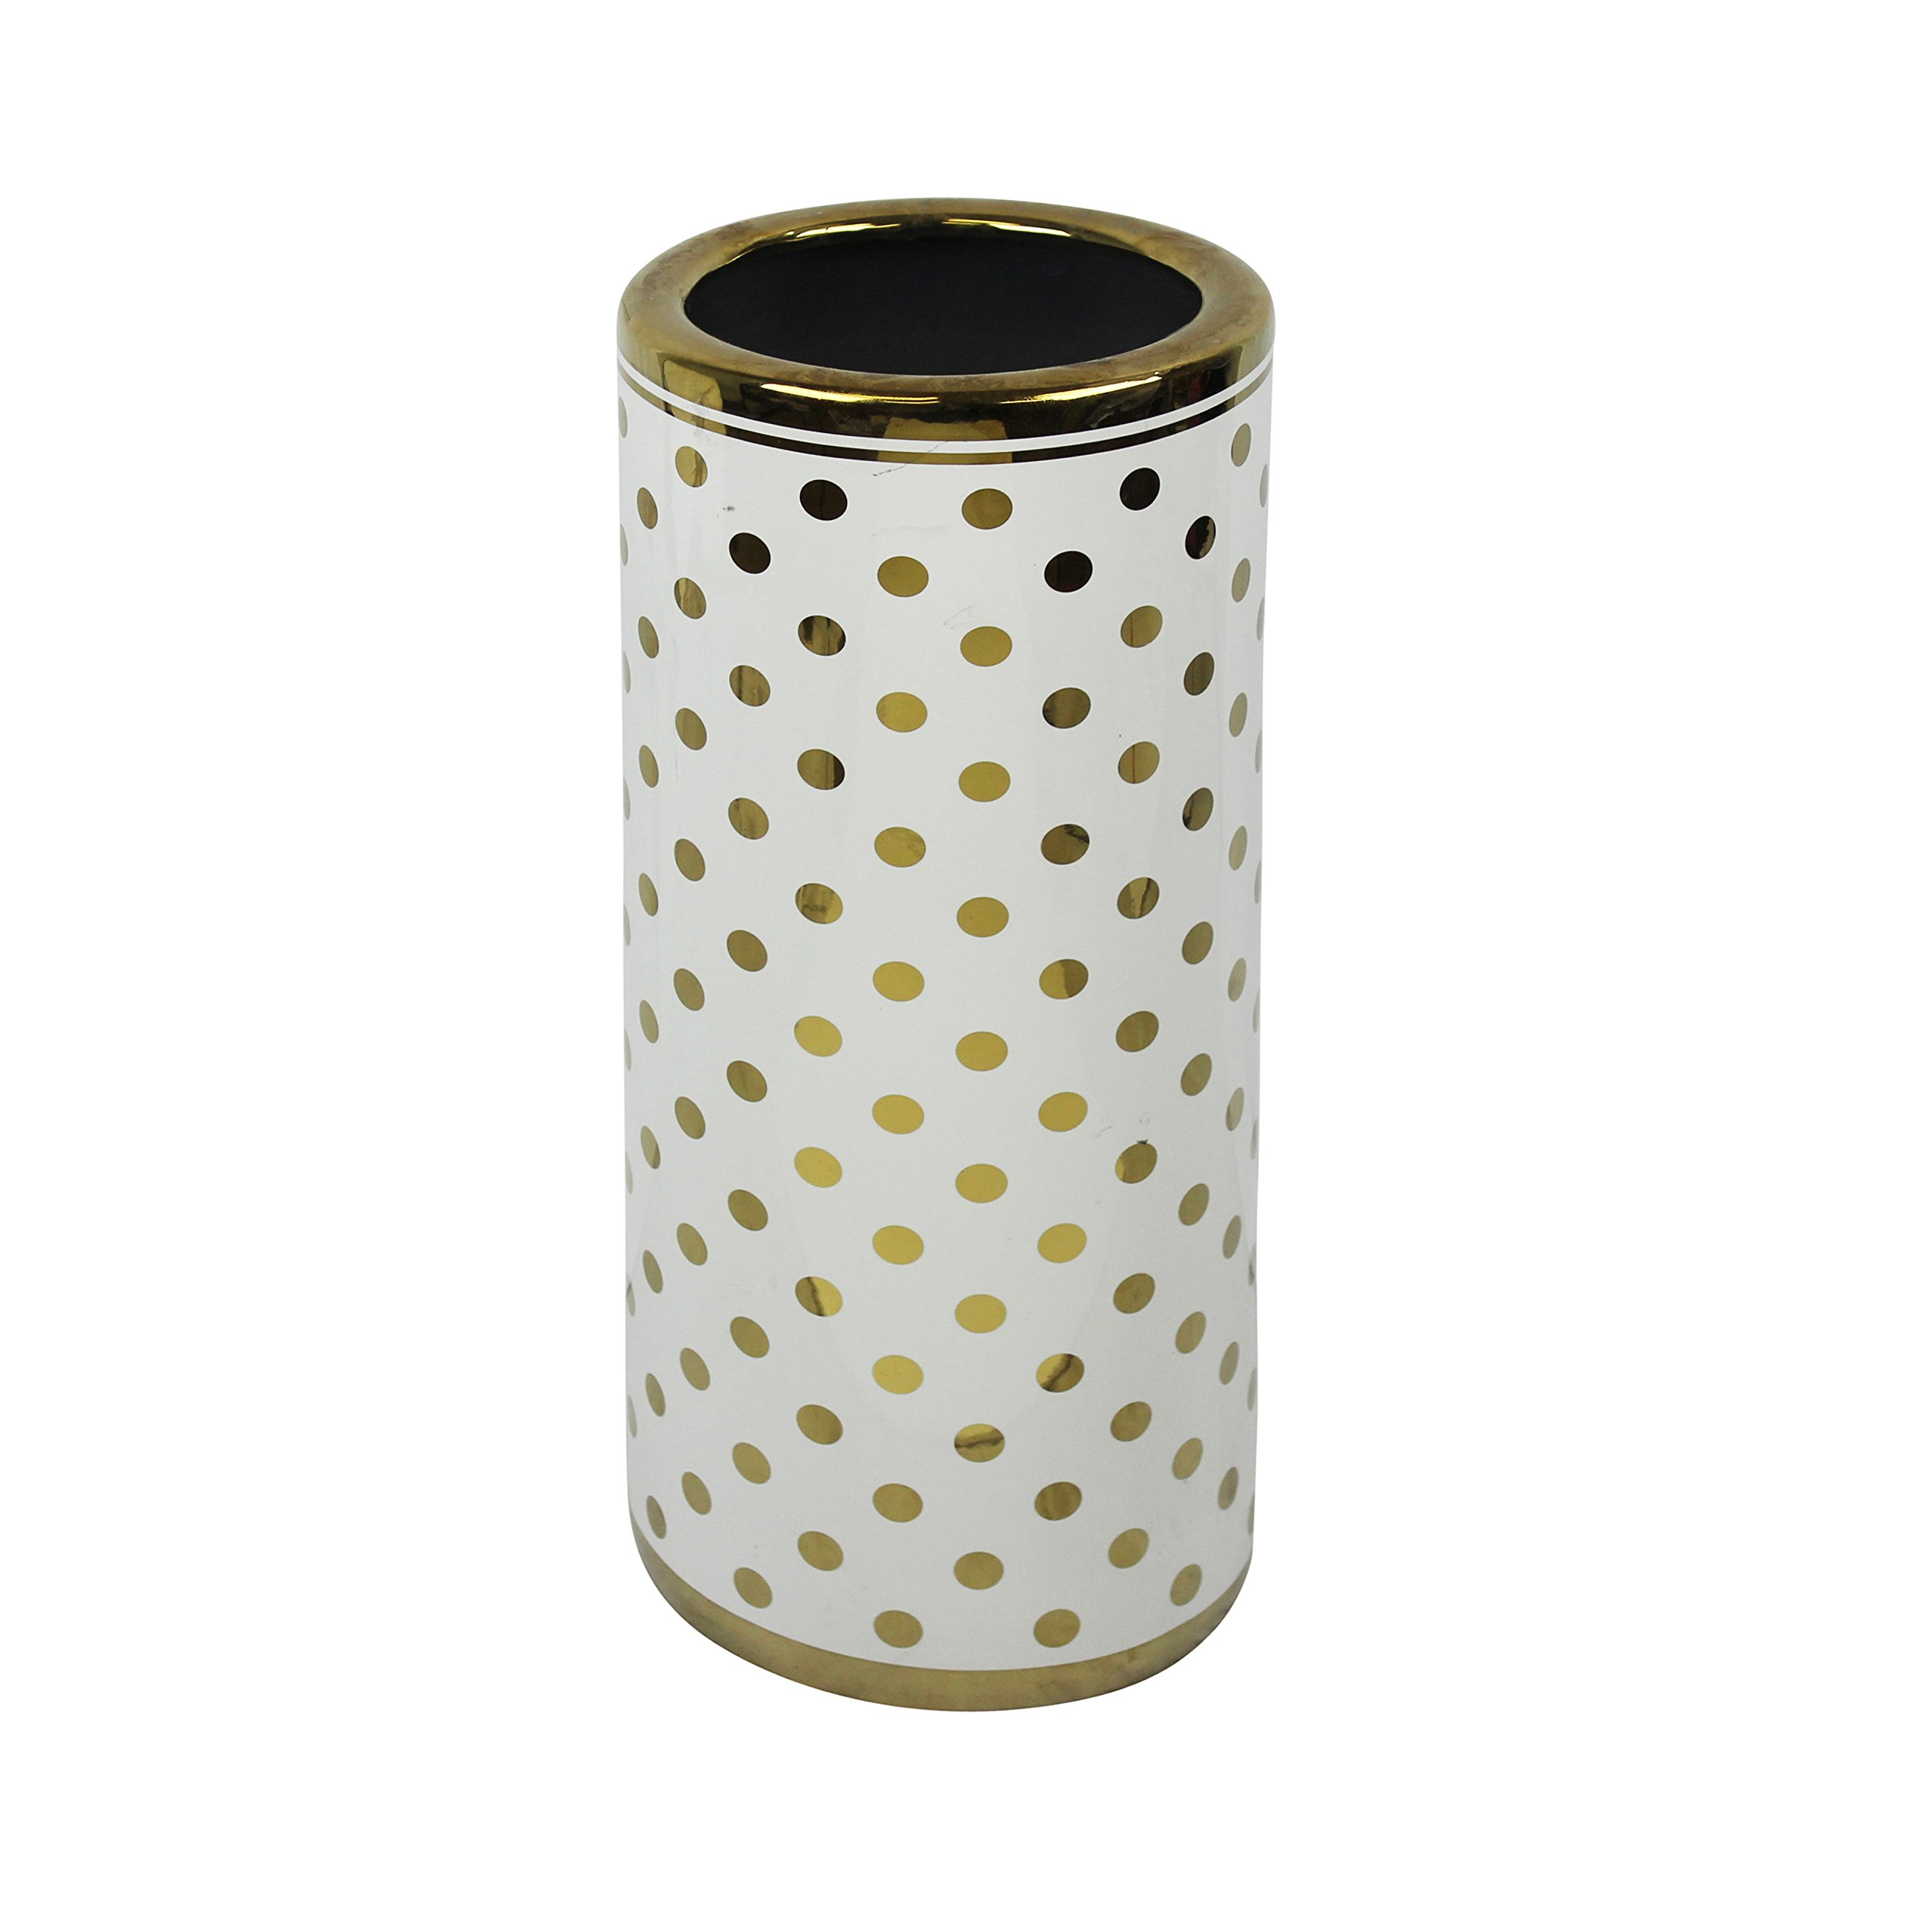 Sagebrook Home Decorative Ceramic Umbrella Stand, 7.75x7.75x18, White/Gold